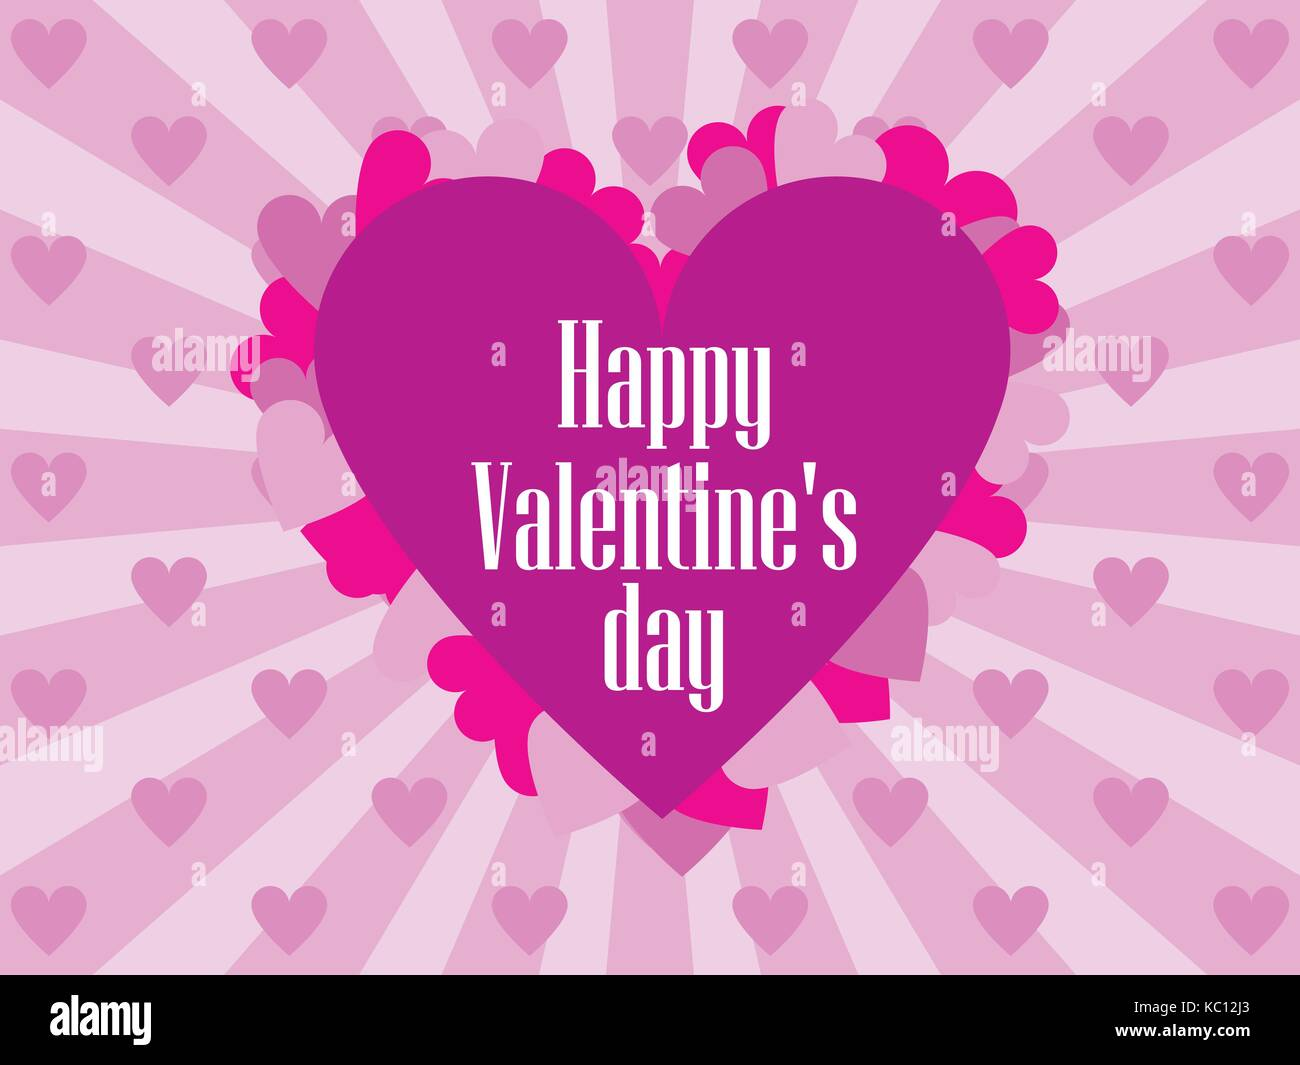 Happy Valentines Day Festive Background For Greeting Cards And